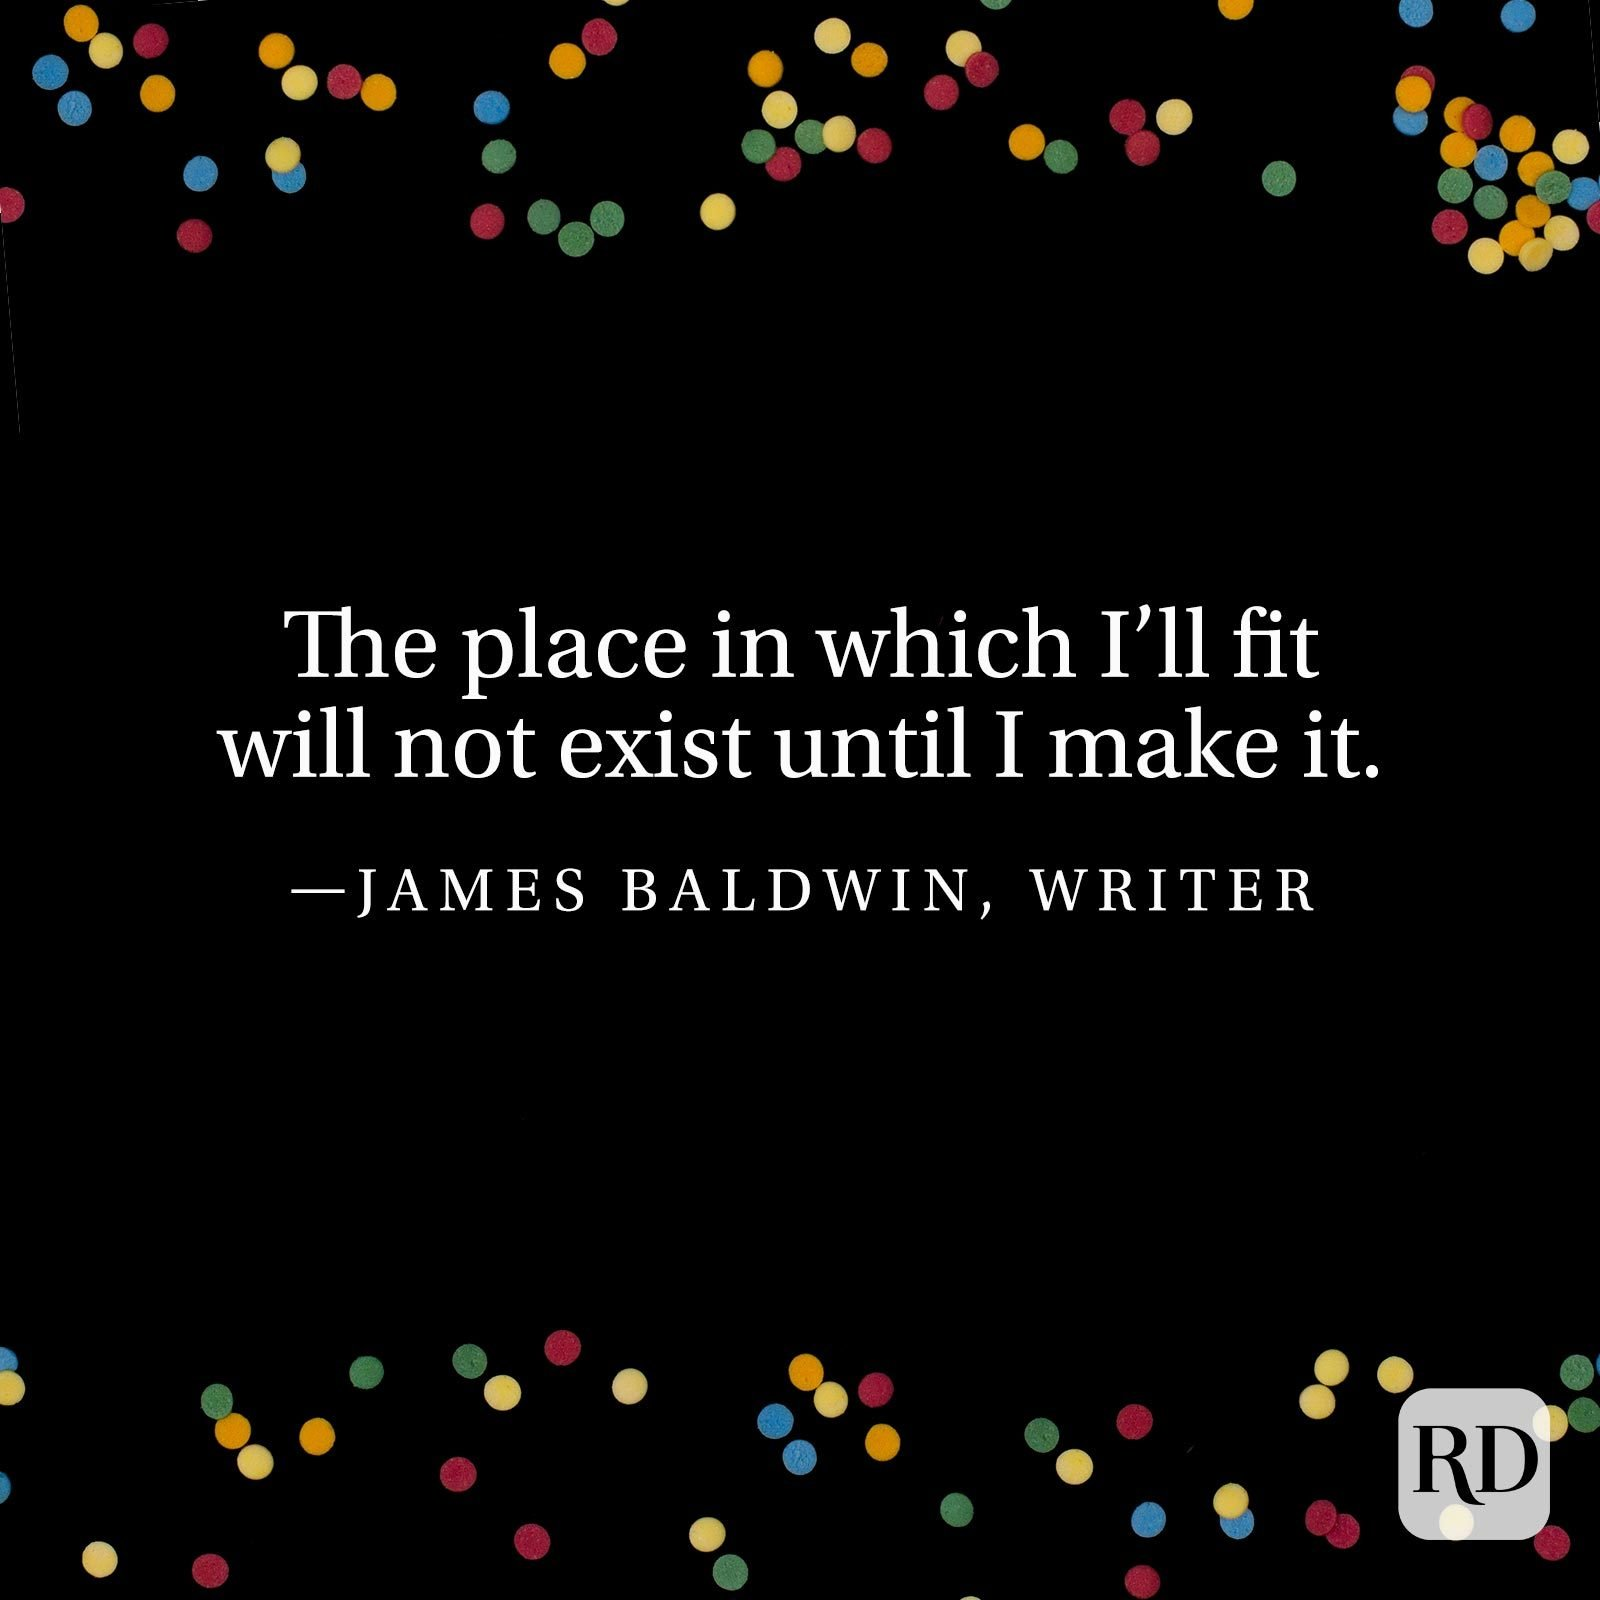 """The place in which I'll fit will not exist until I make it."" —James Baldwin, writer."